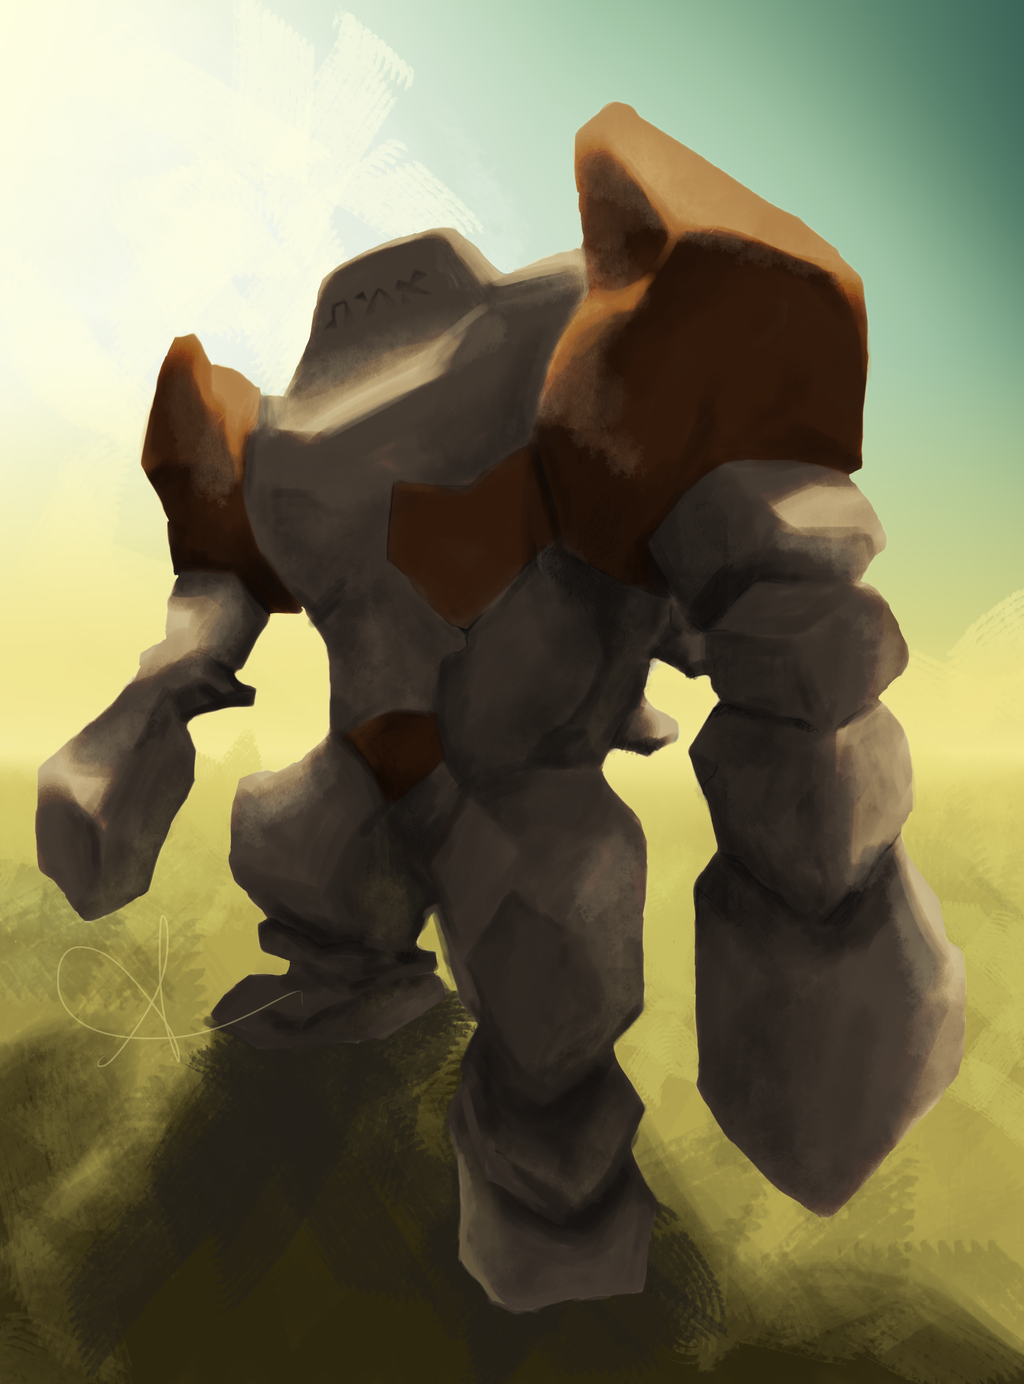 Regirock the golem of Helem by AliAadi on DeviantArt